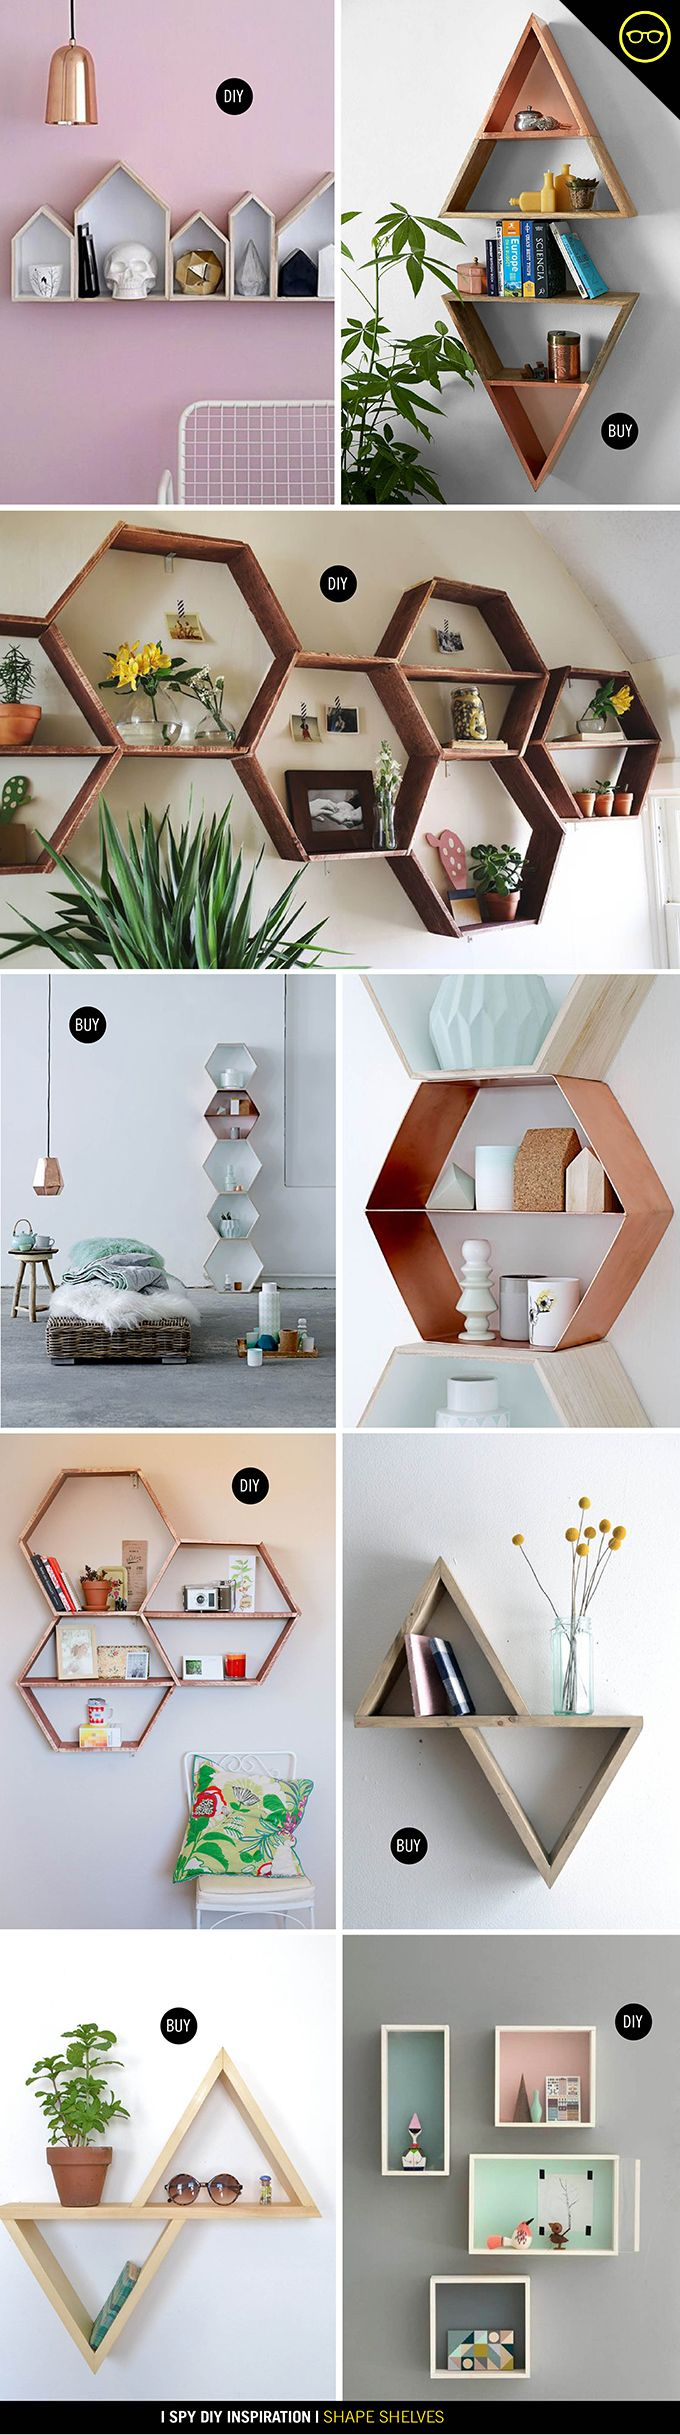 INSPIRATION   SHAPE SHELVES   I SPY DIY. Best 25  Bedroom shelves ideas on Pinterest   Bedroom shelving